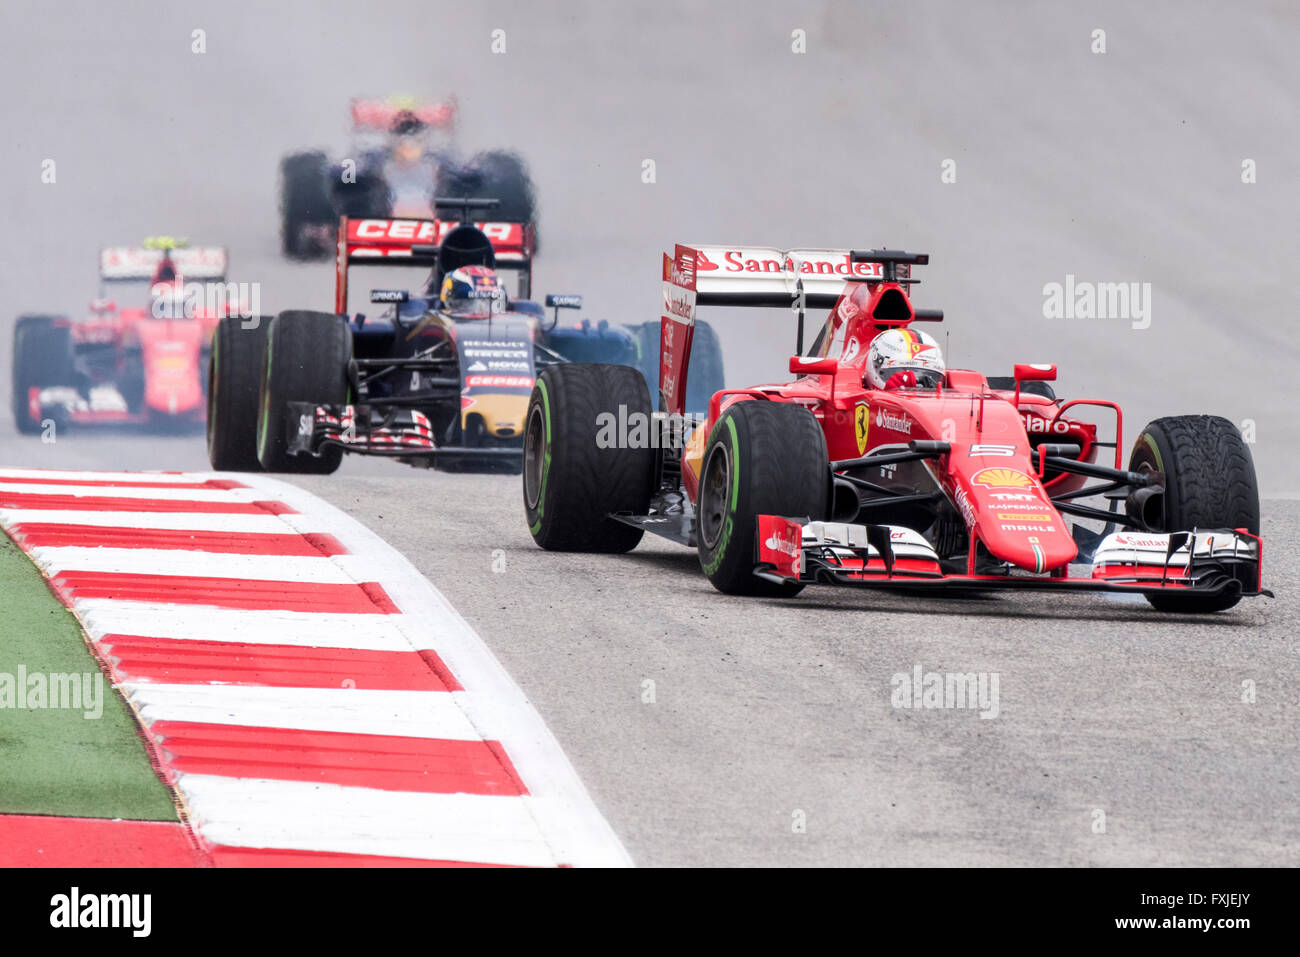 Sebastian Vettel's Ferrari leads a group of cars into turn 11 at Circuit of the Americas during the 2015 US Grand Stock Photo